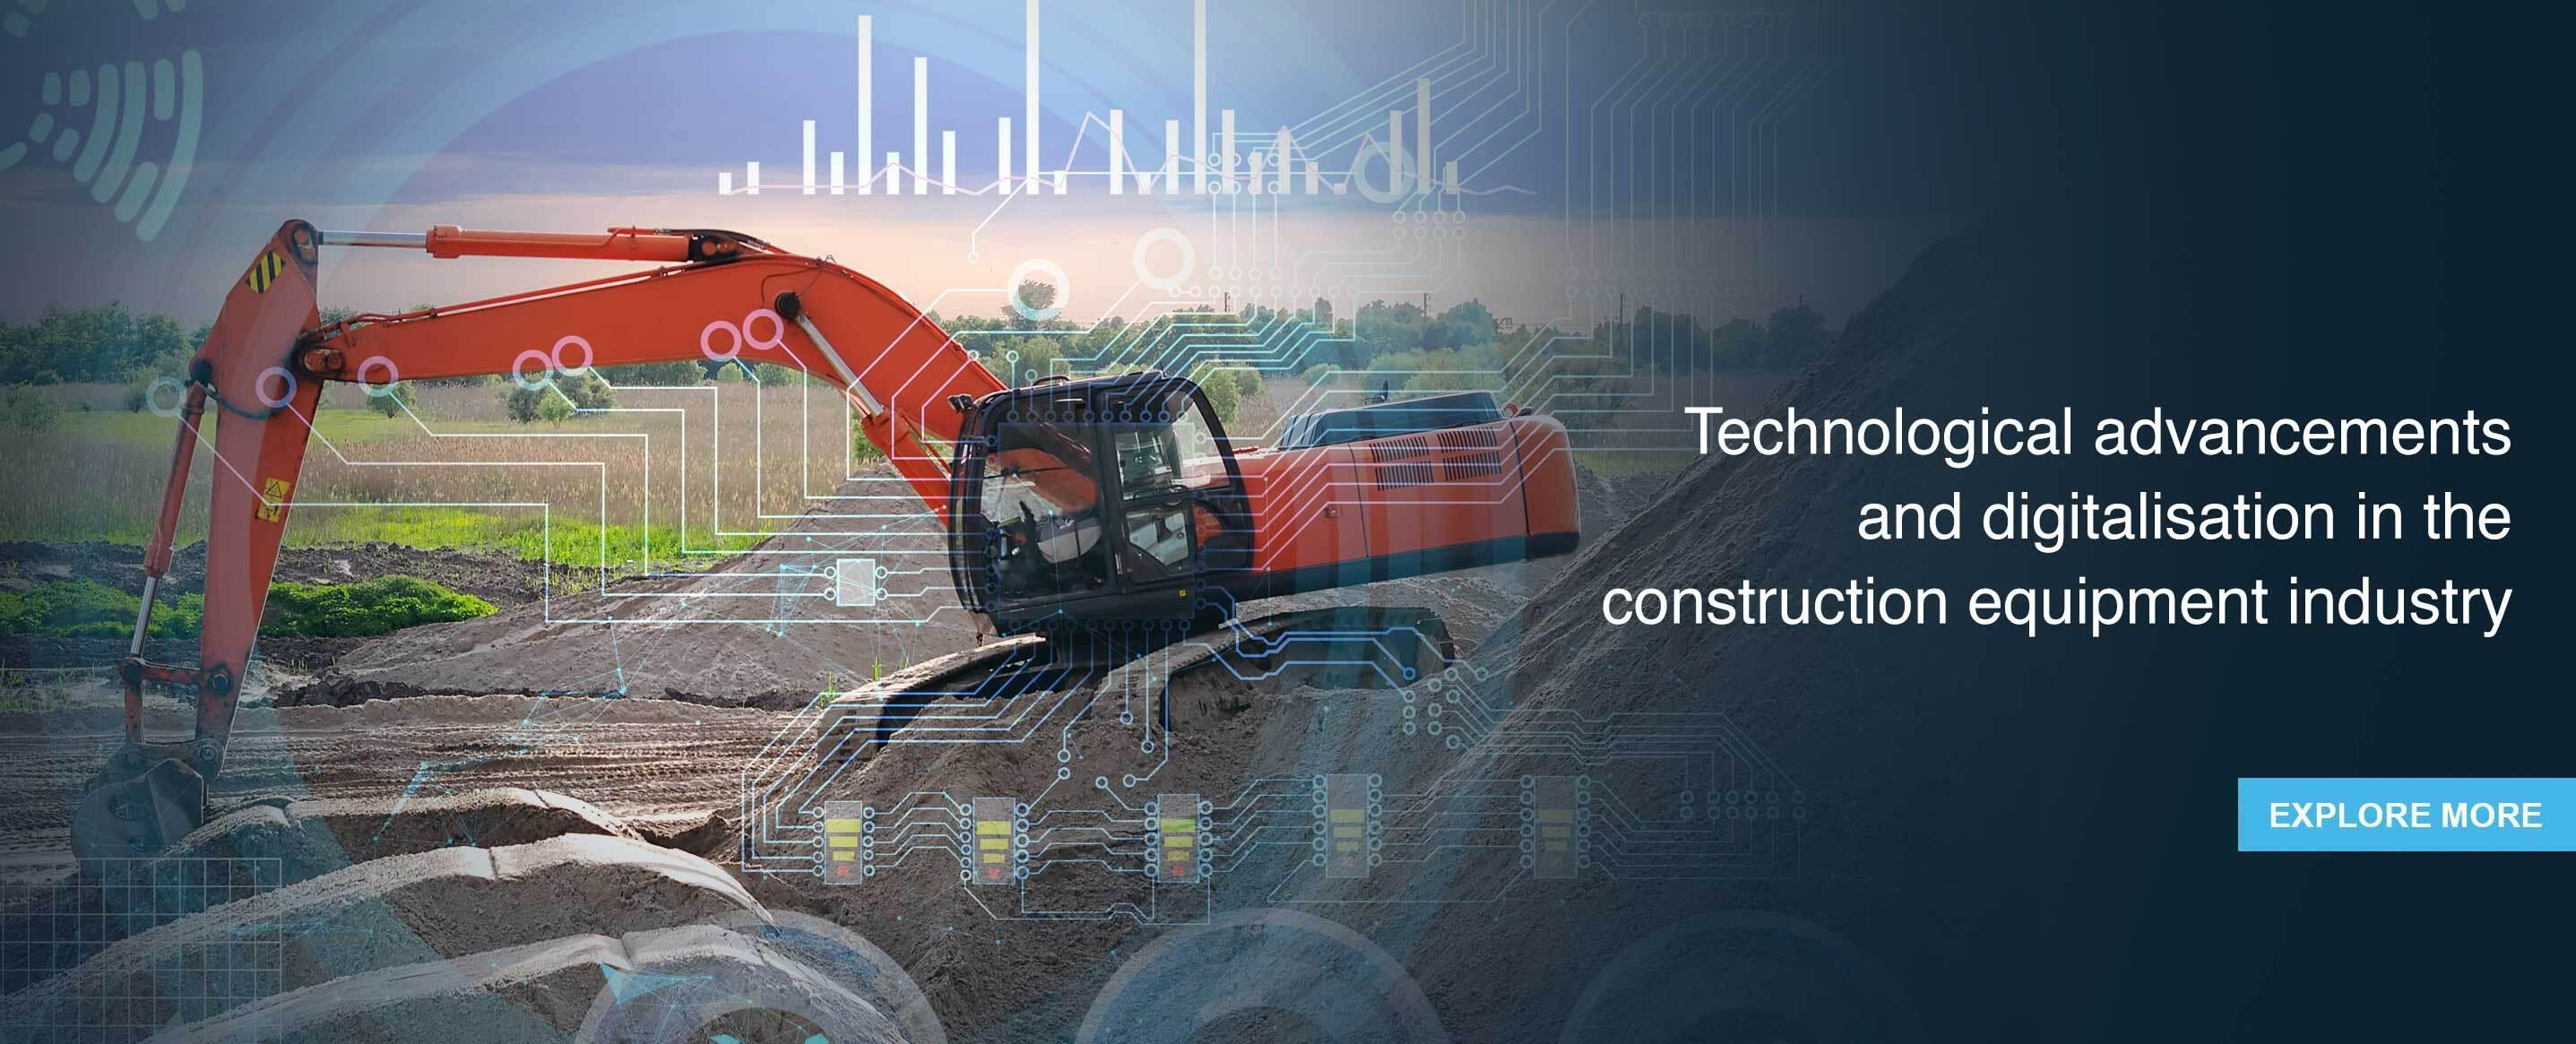 Technological advancements and digitalisation in the construction equipment industry